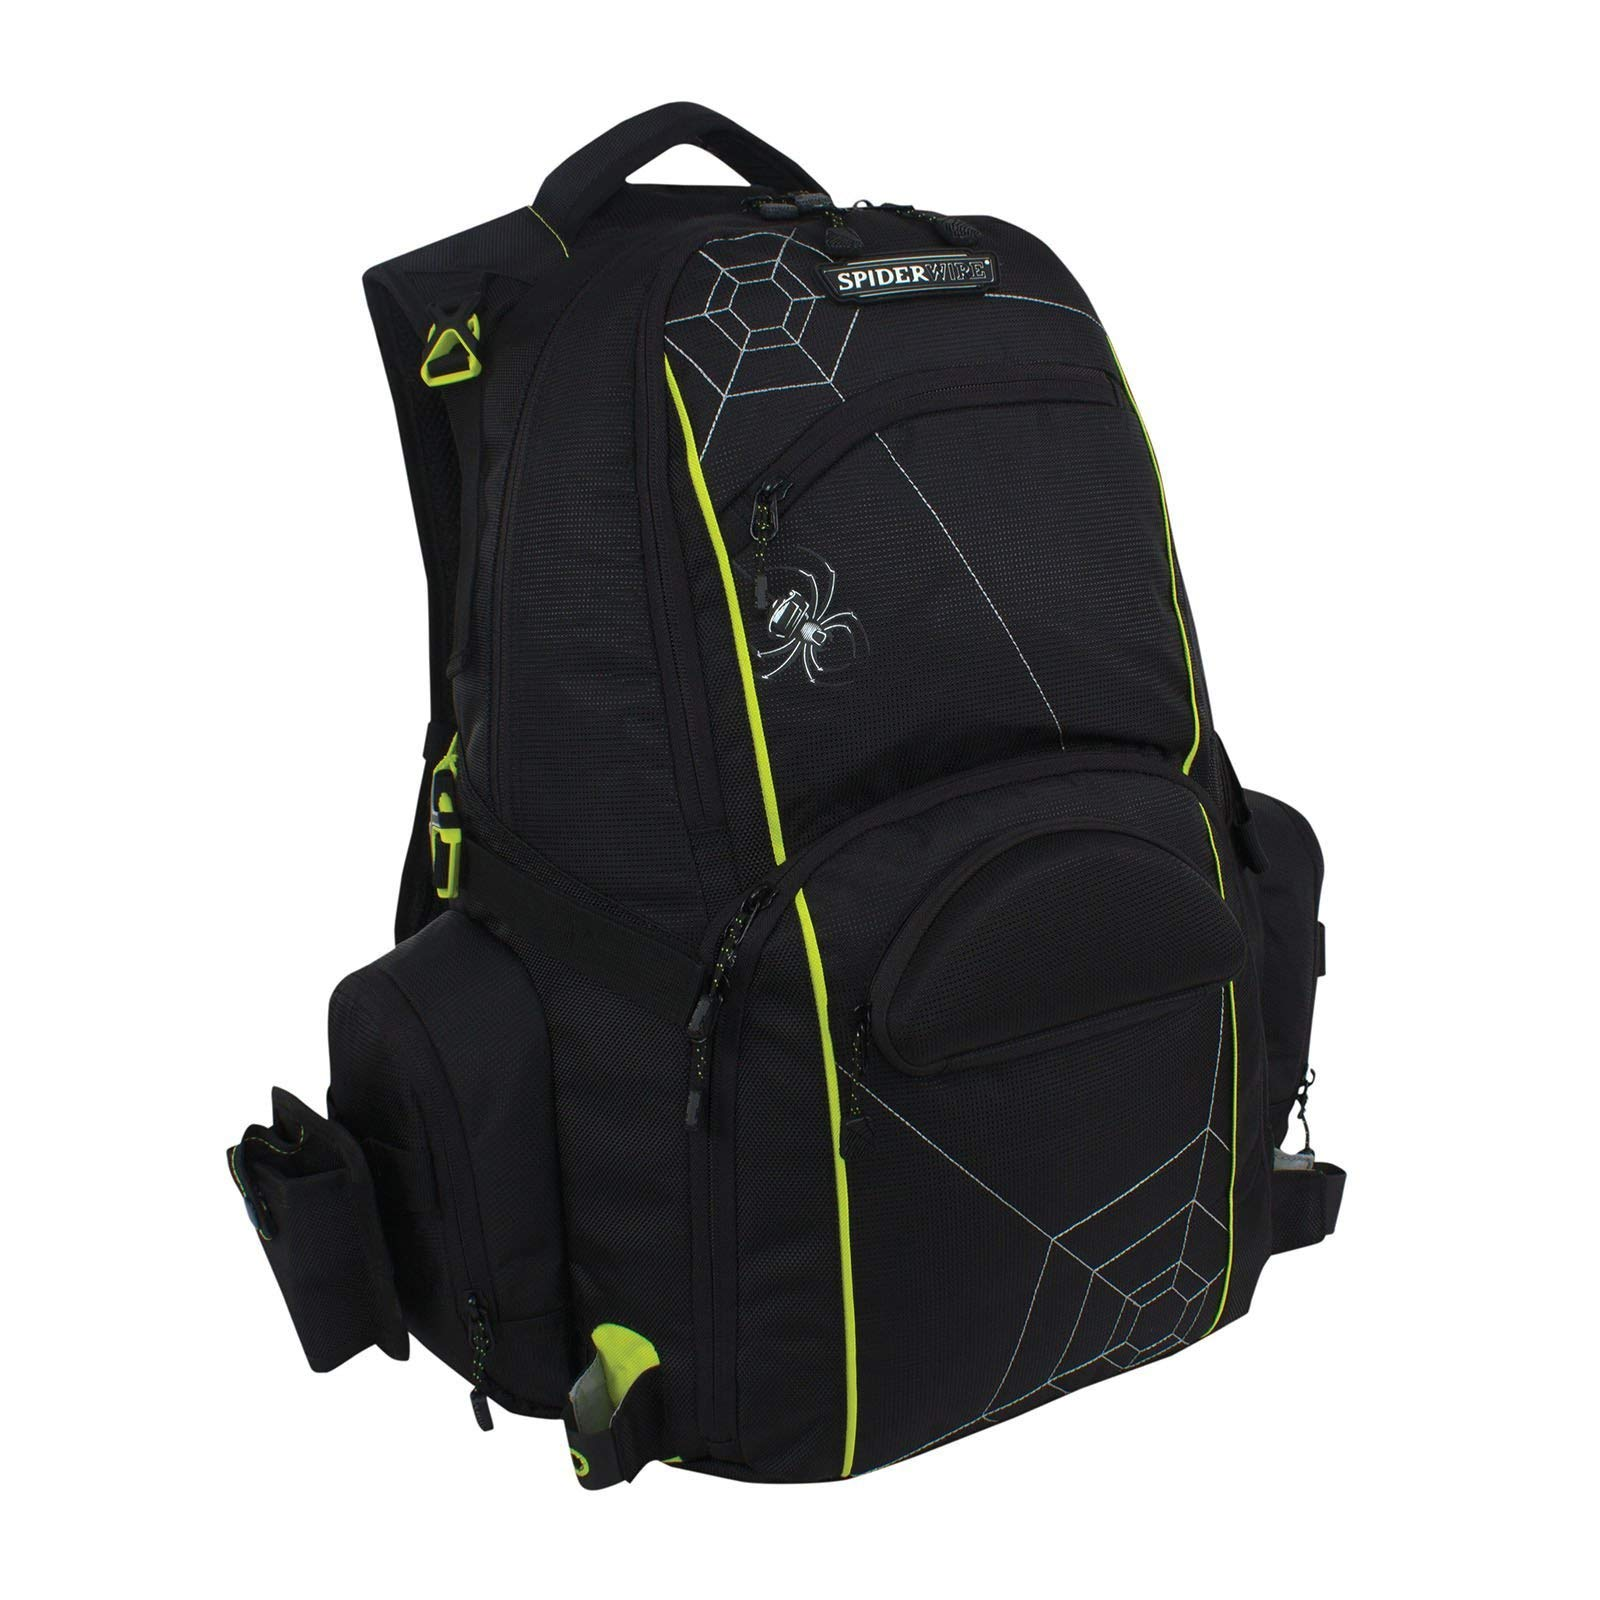 Spiderwire Fishing Tackle Backpack W/ 3 Medium Utility Boxes SPB006 by Spiderwire